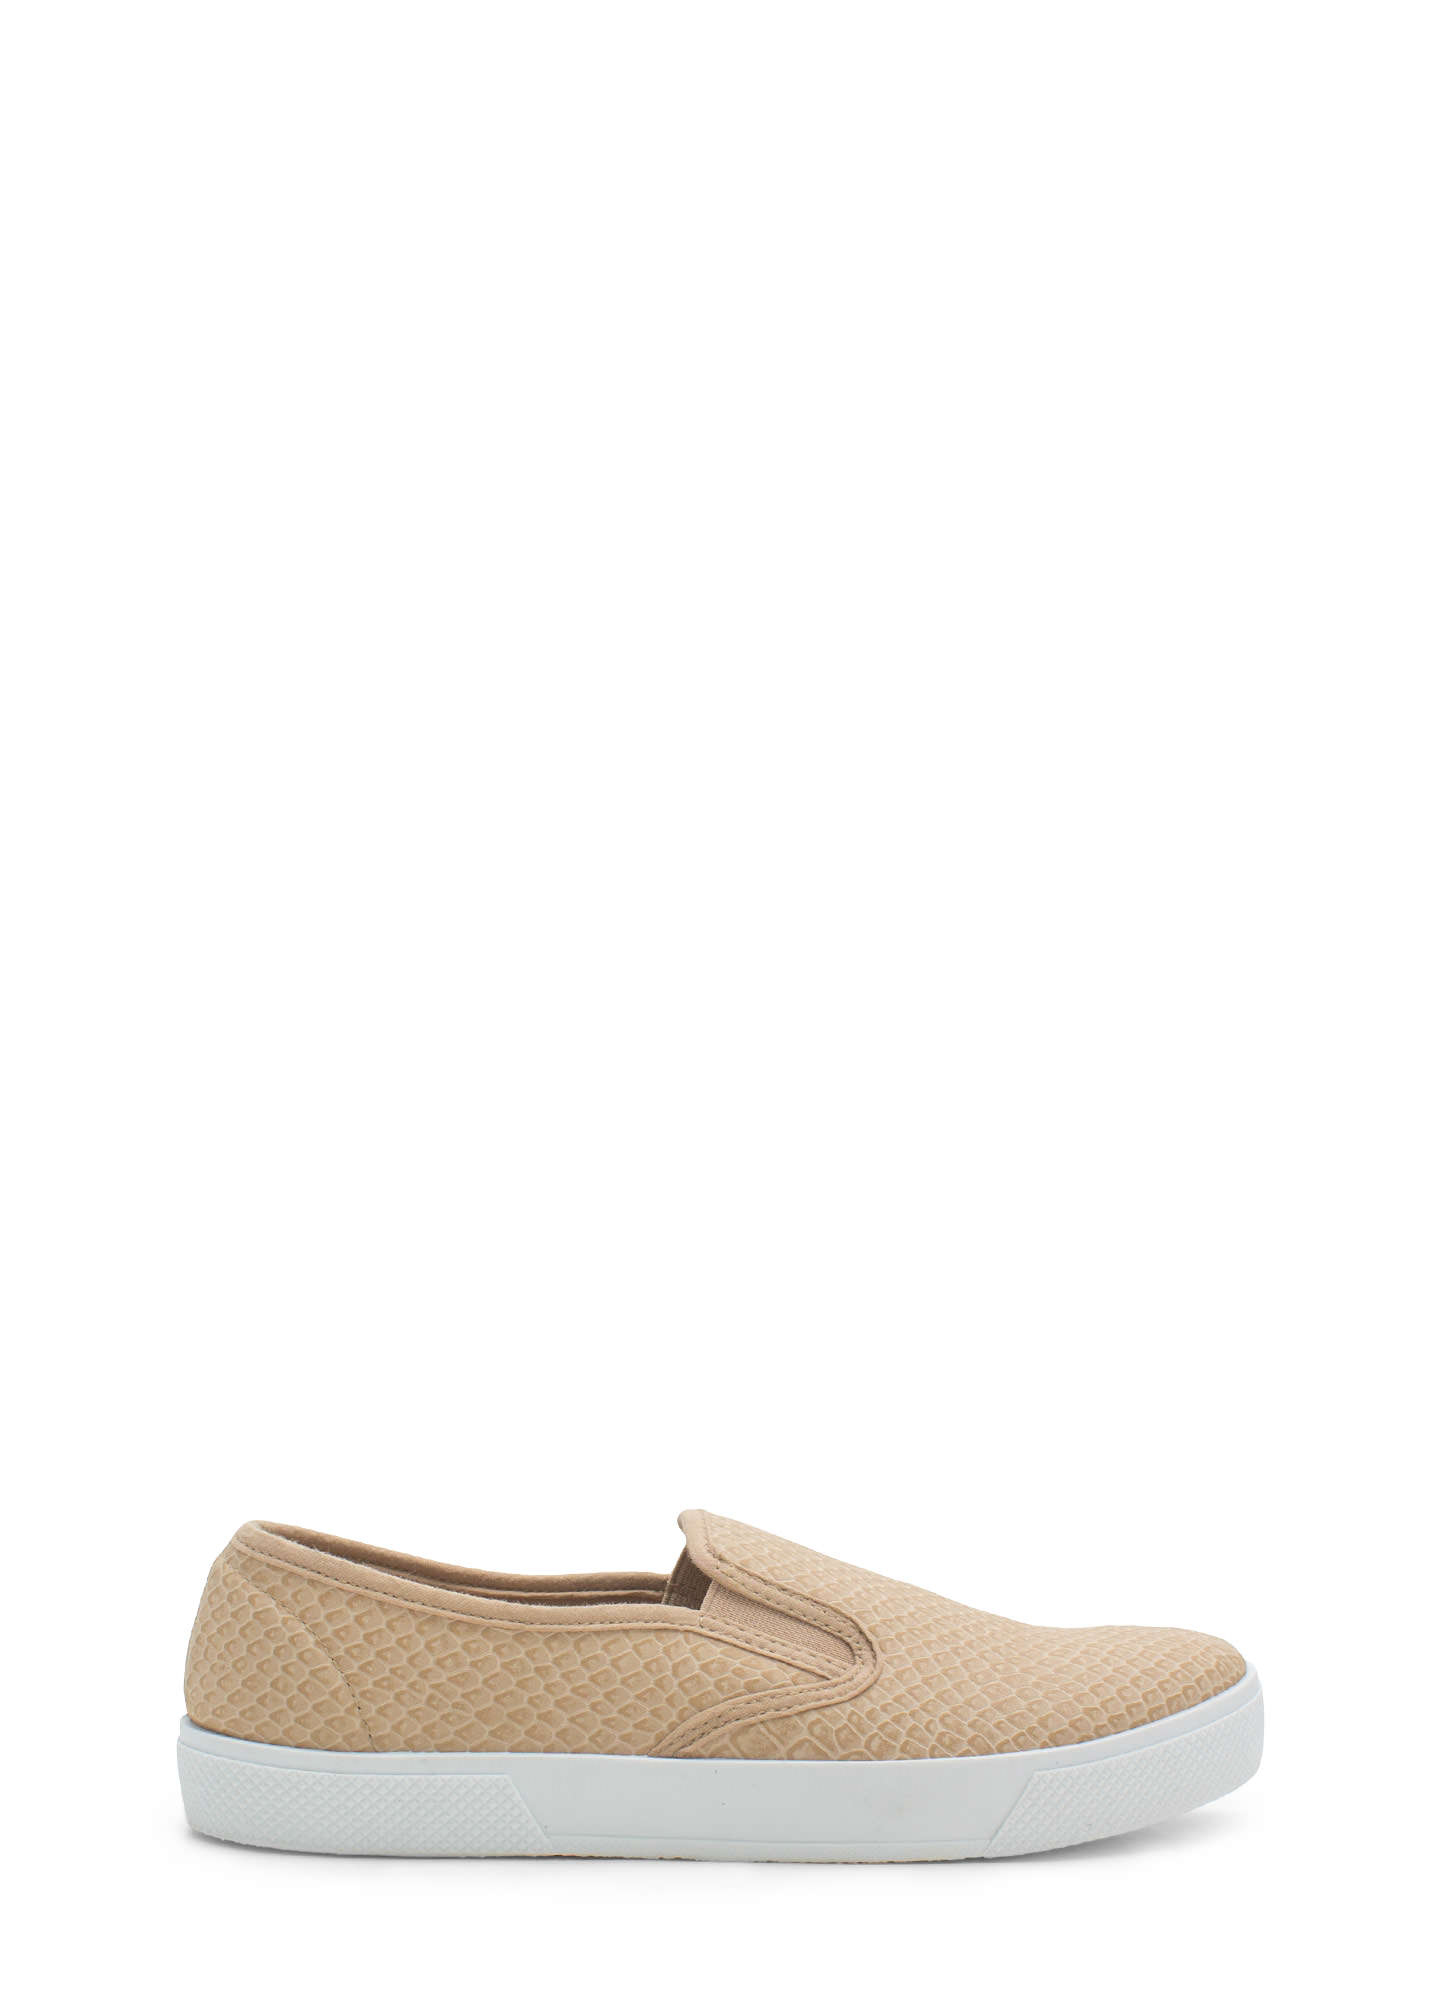 Come Slither Scaled Slip-On Sneakers TAUPE